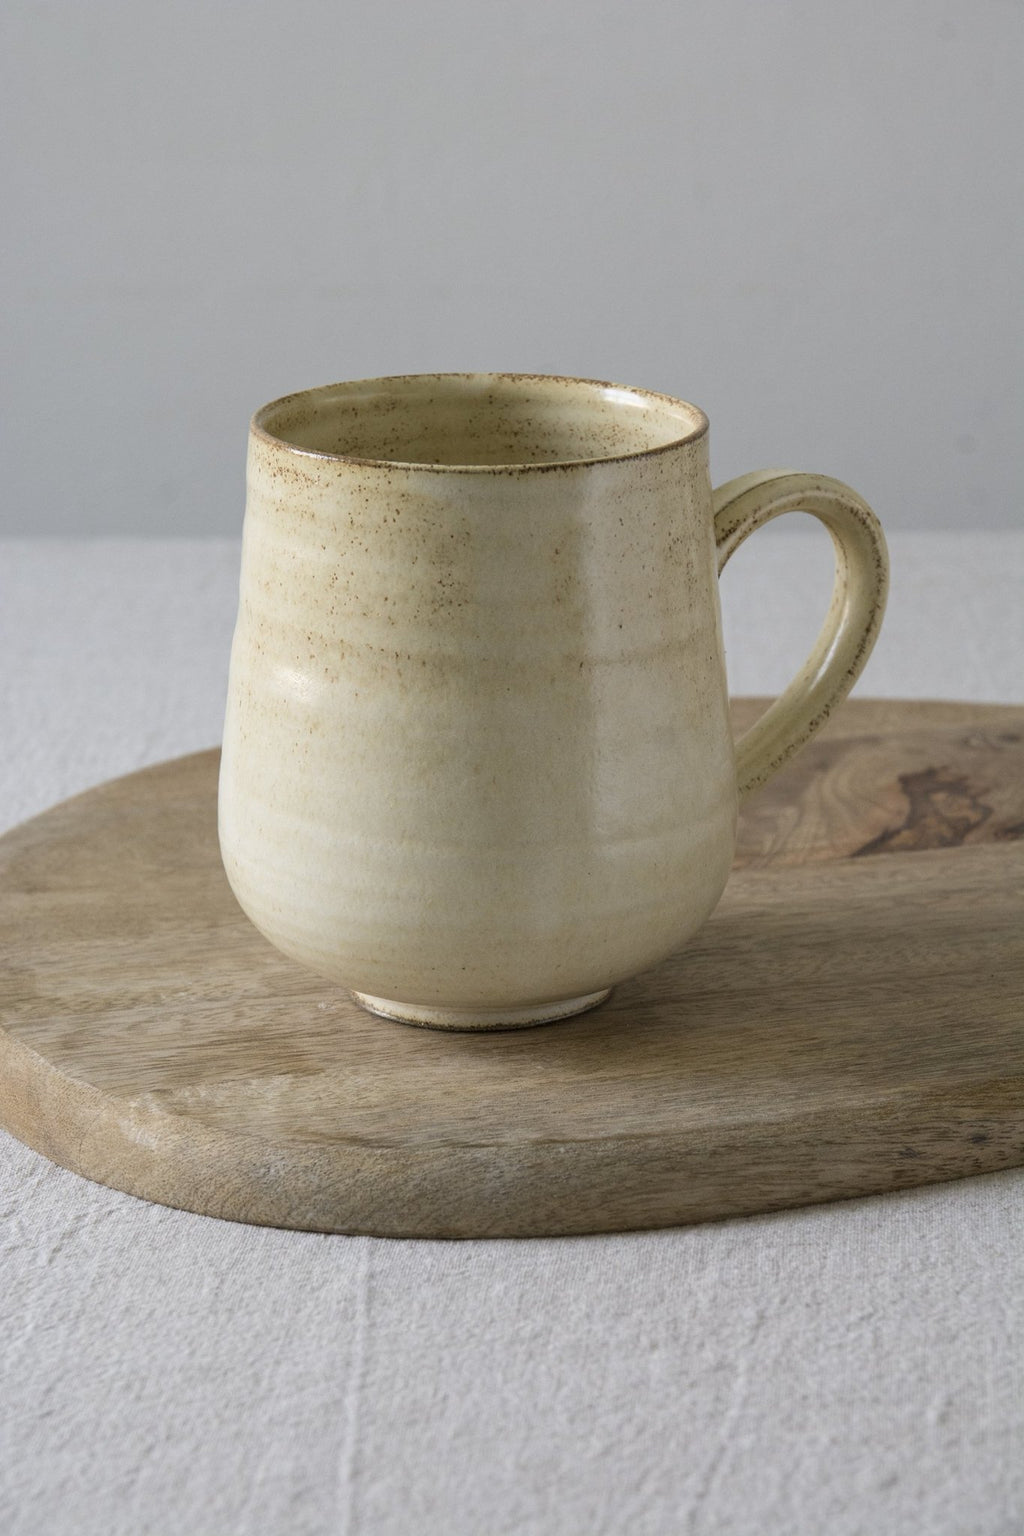 Extra Large Pottery Mug, 20 fl oz - Mad About Pottery - Mug